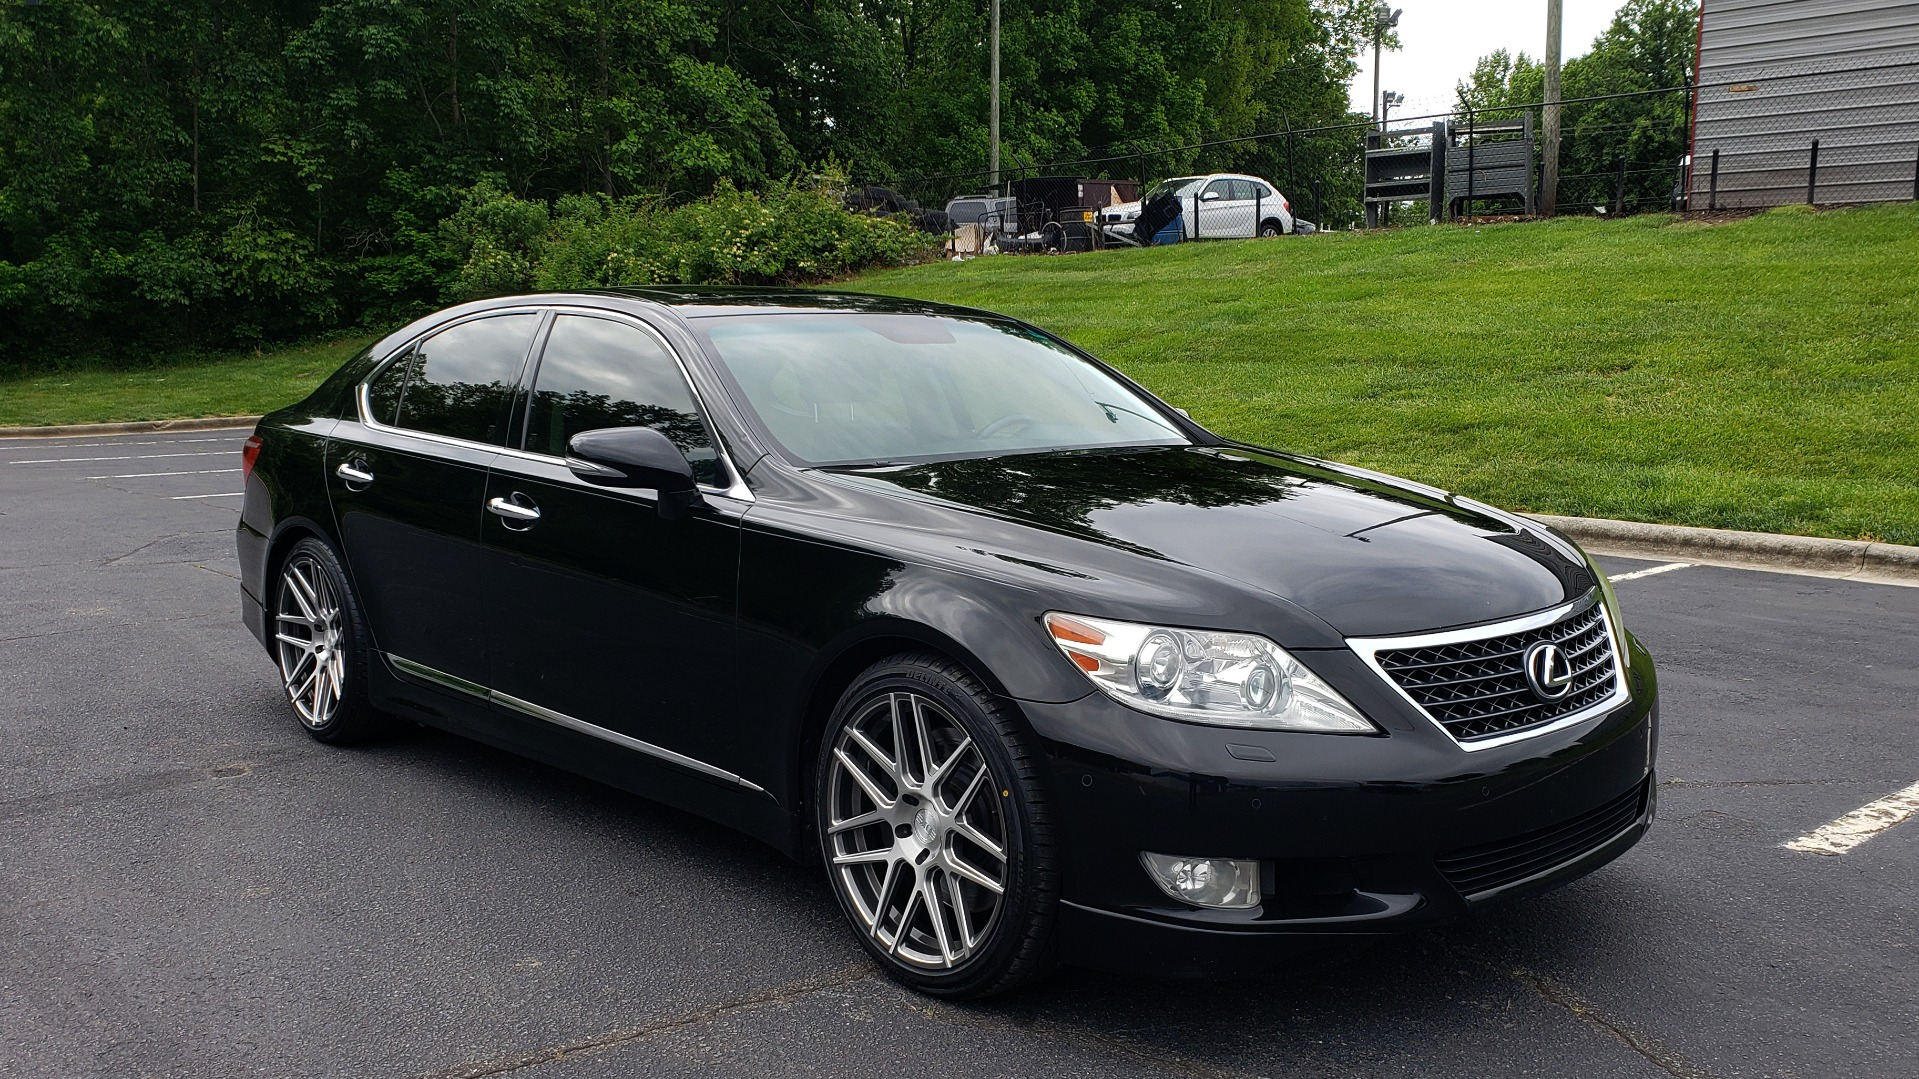 Used 2012 Lexus LS 460 COMFORT W/SPORT / VENT SEATS / NAV / MARK LEV SND / SUNROOF for sale Sold at Formula Imports in Charlotte NC 28227 5